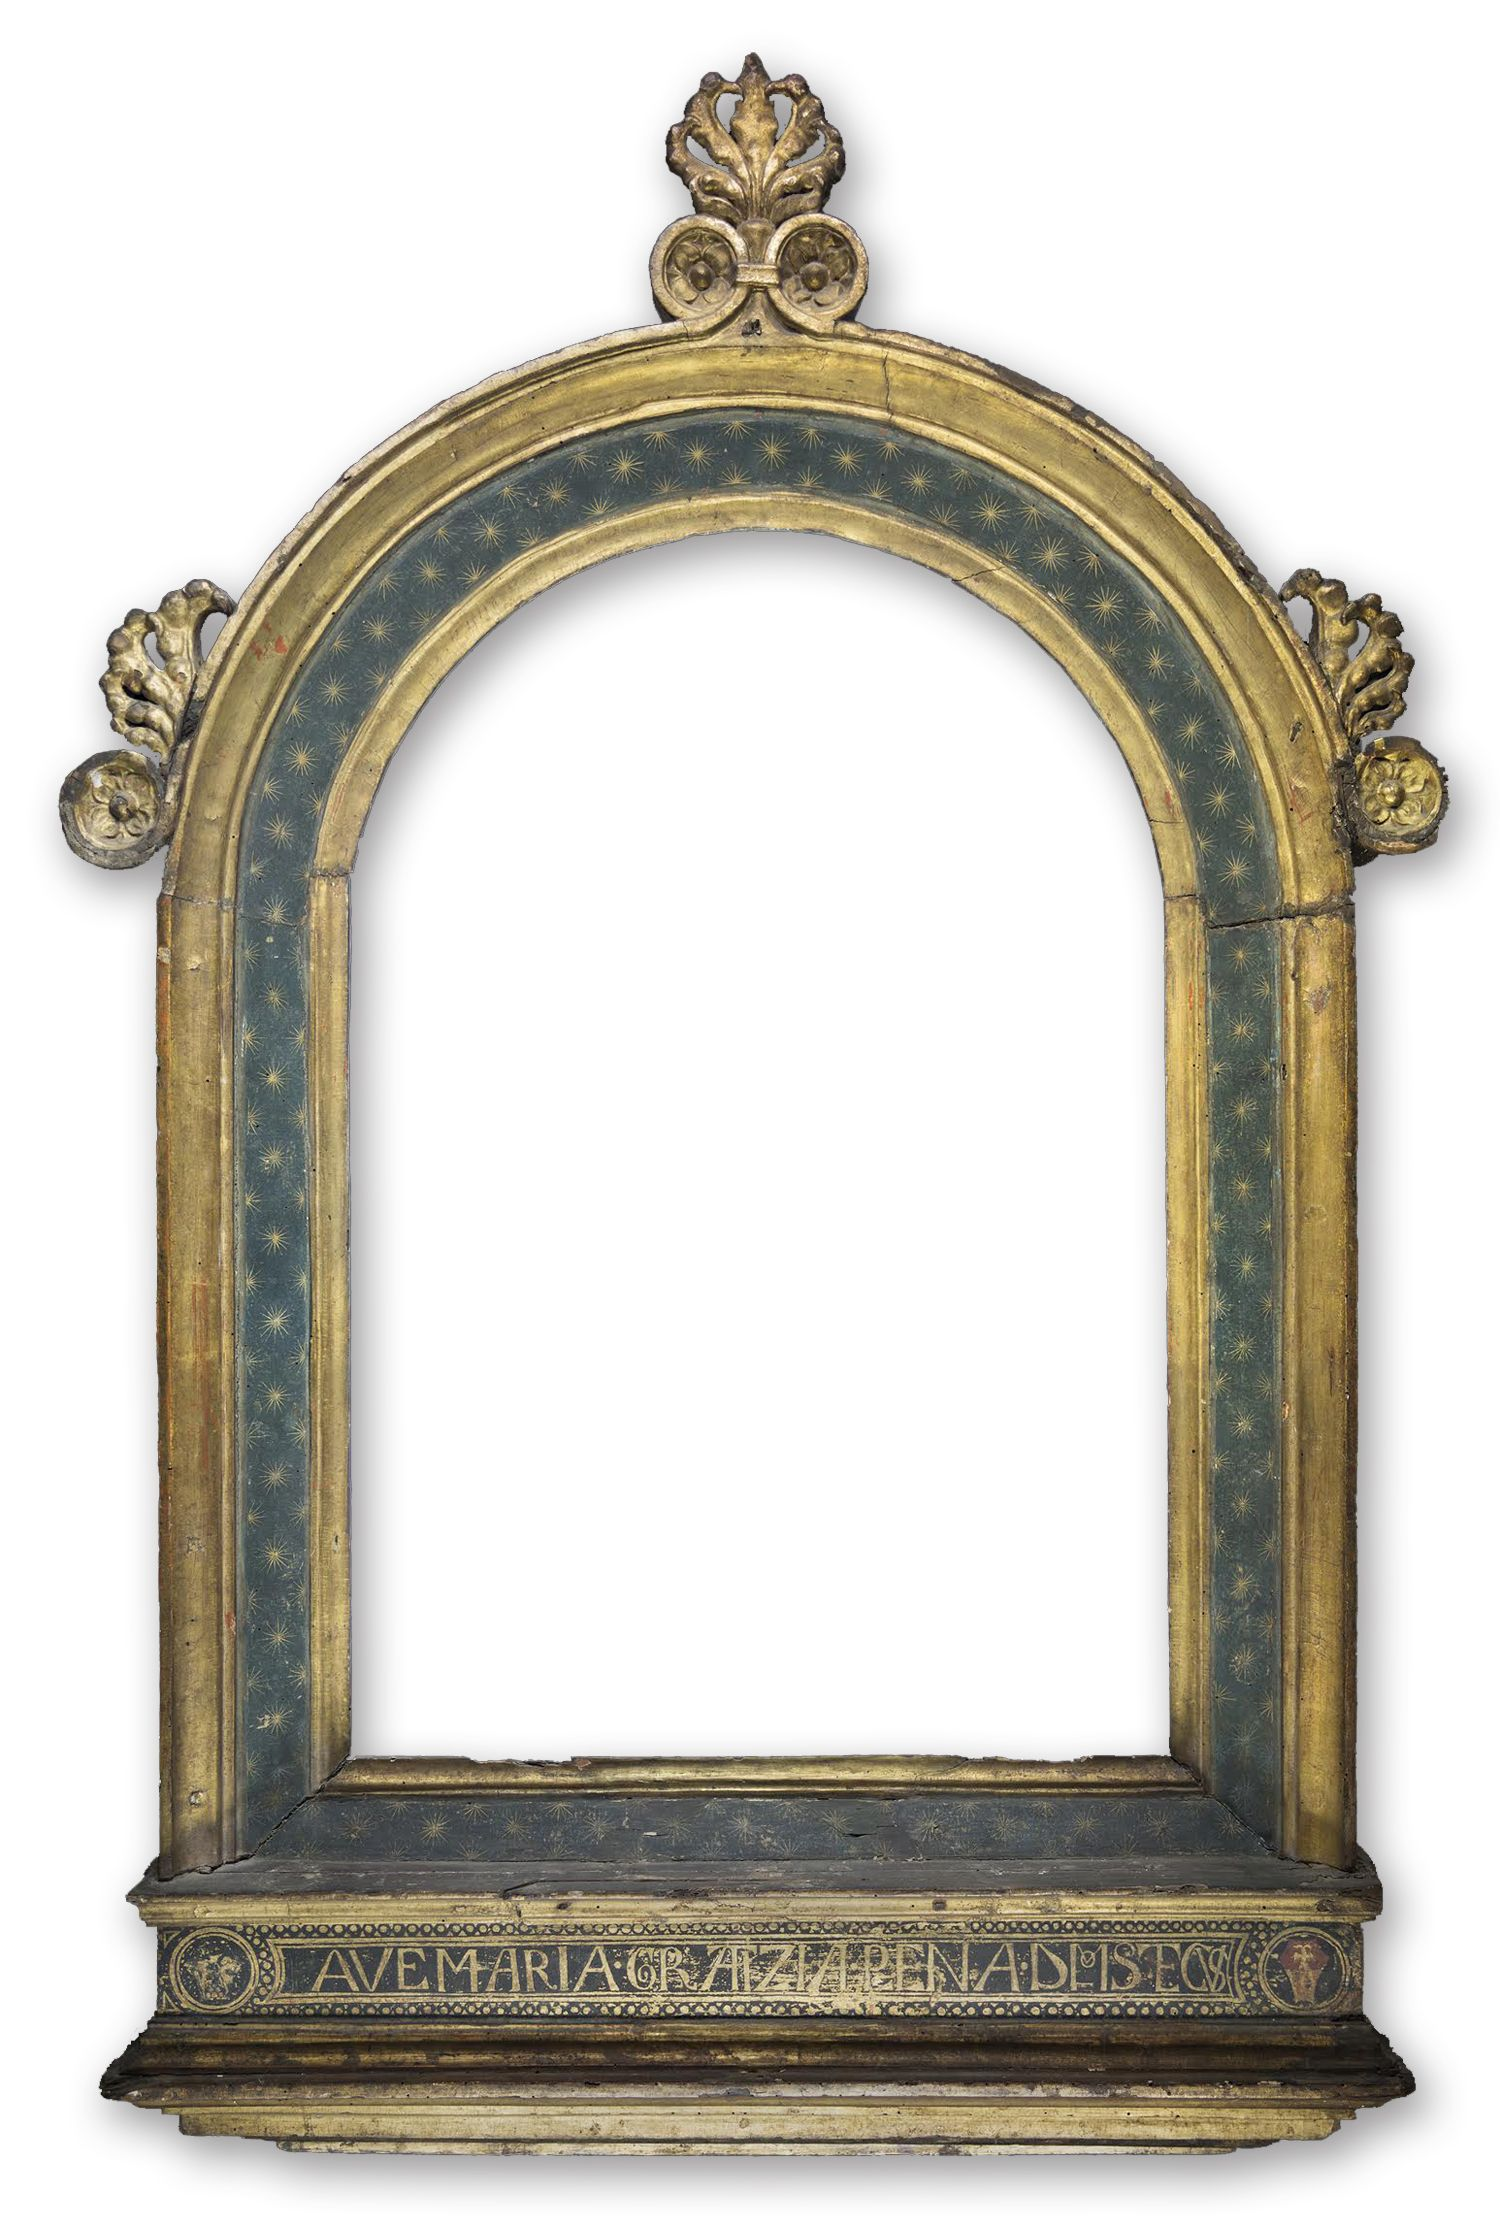 An early Italian Renaissance frame made in Siena incorporated ...